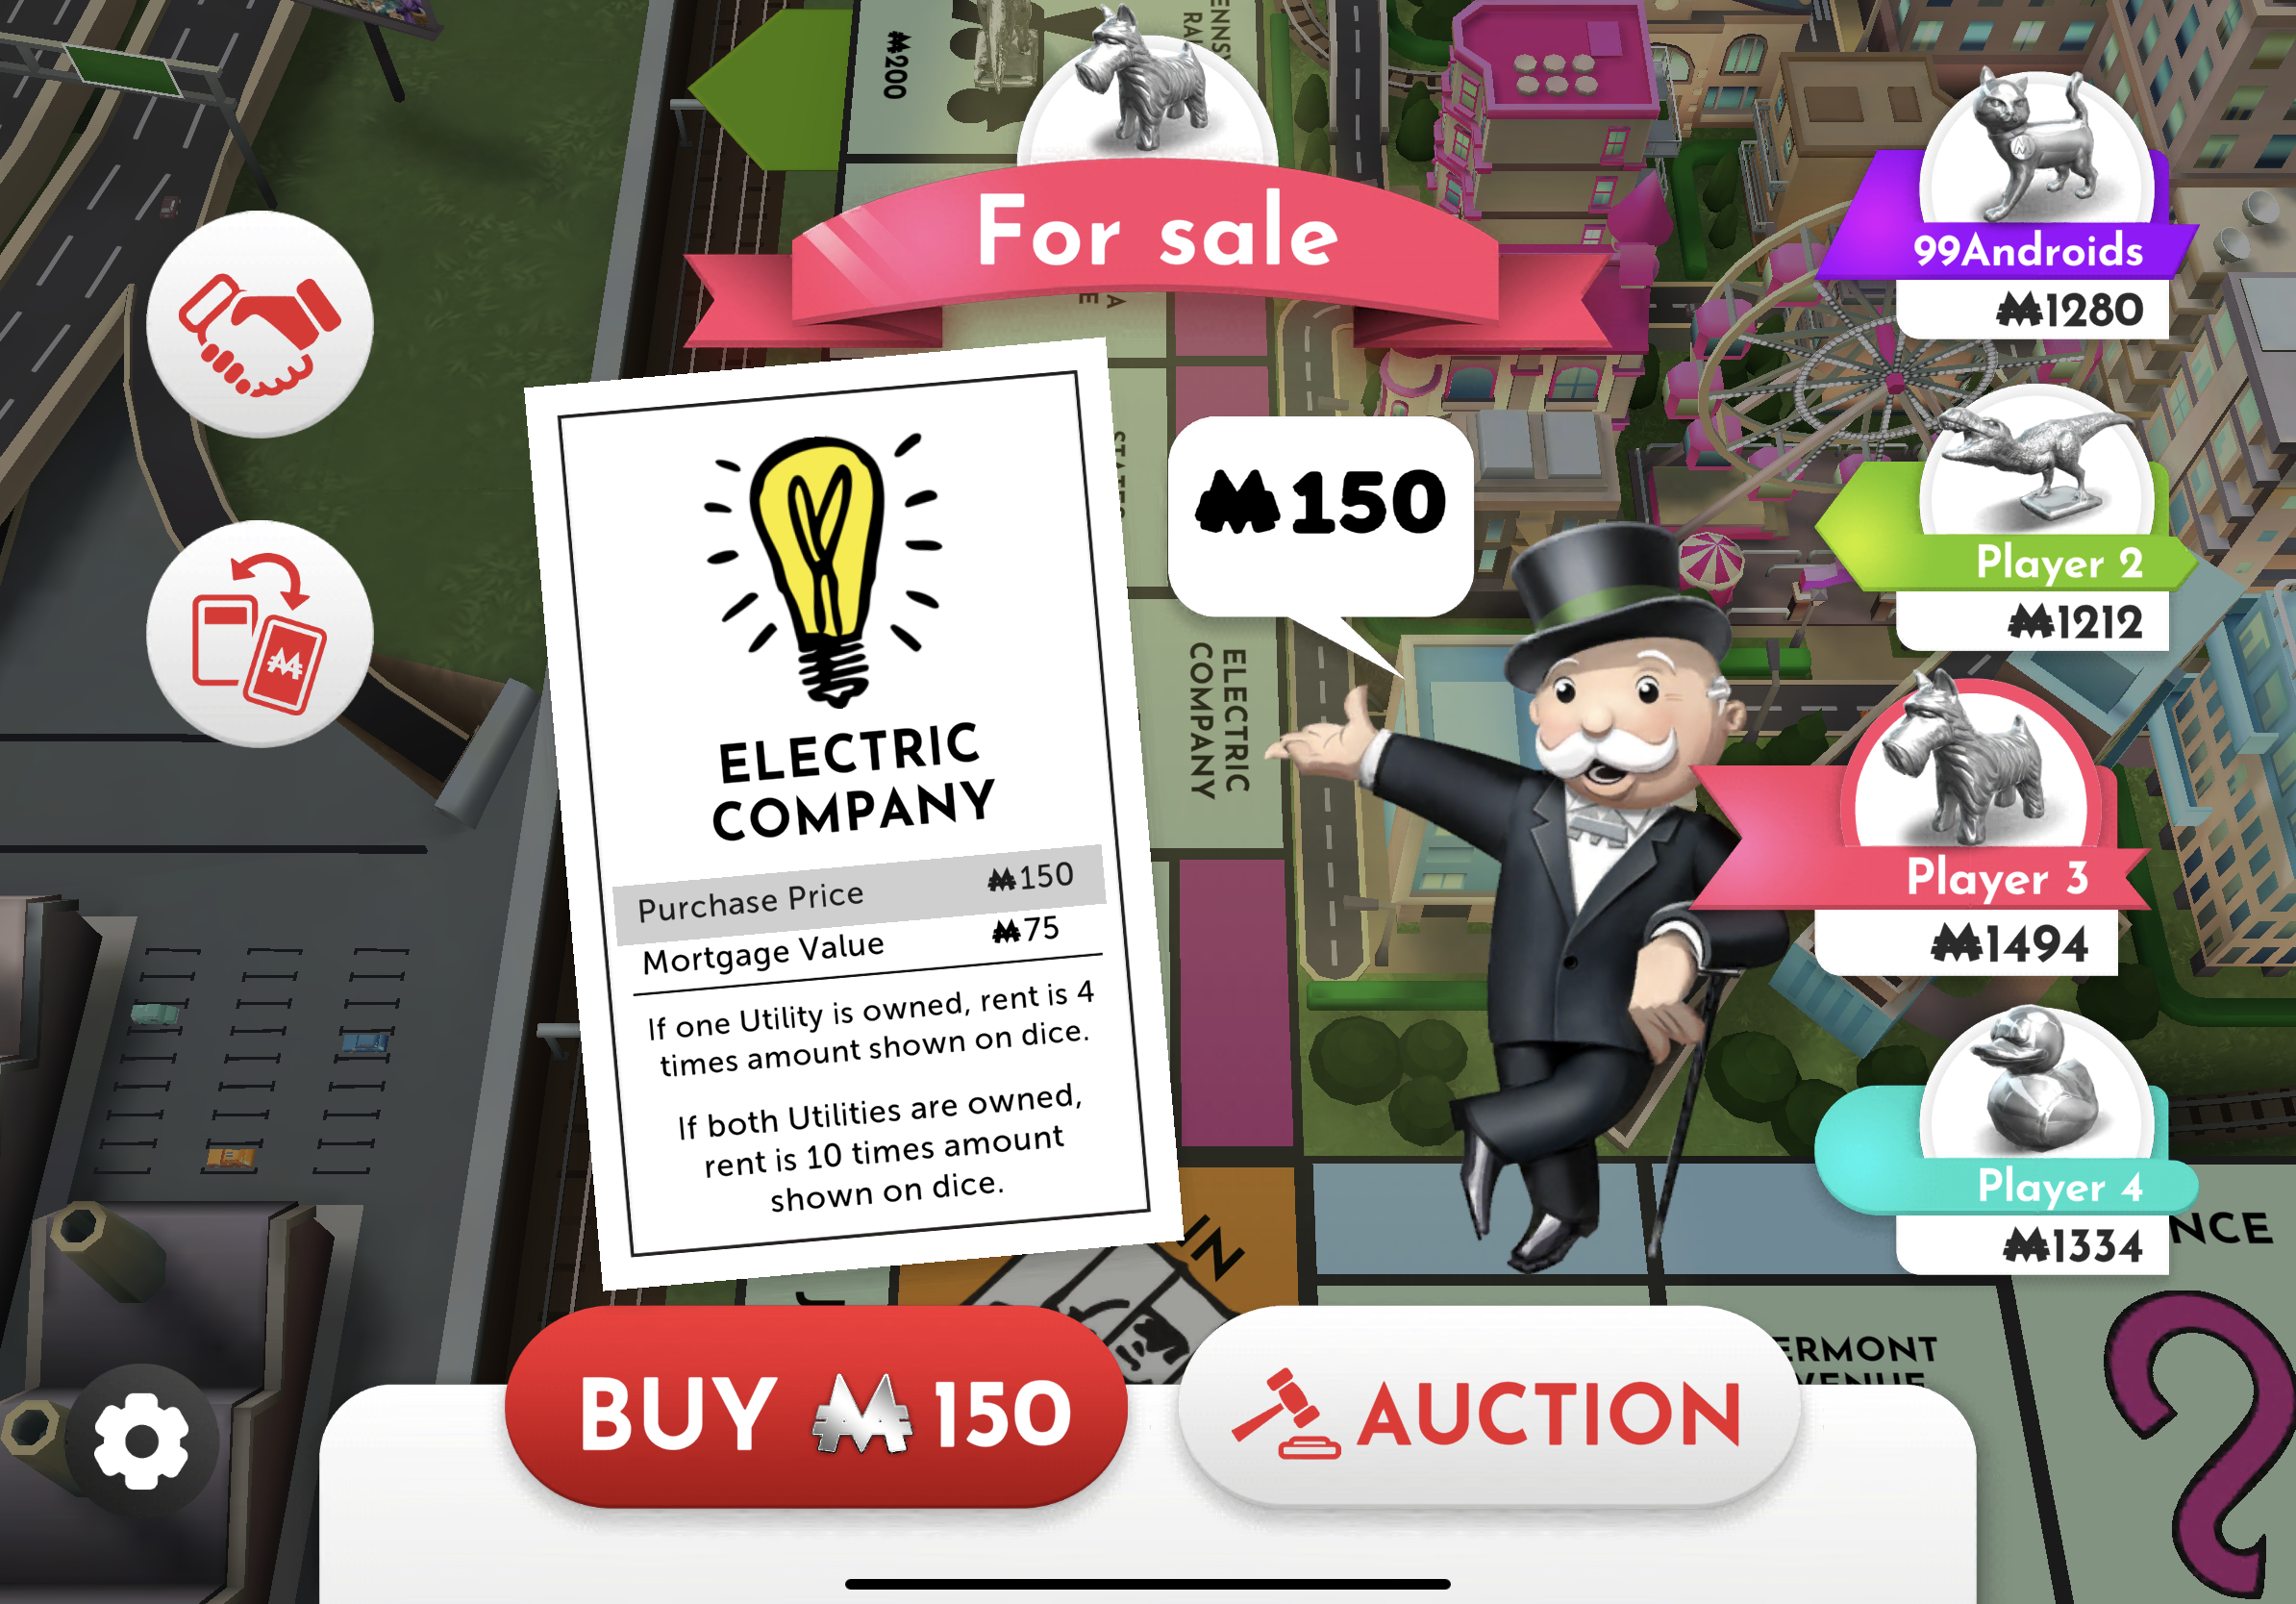 Monopoly prompt to buy/auction Electric Company